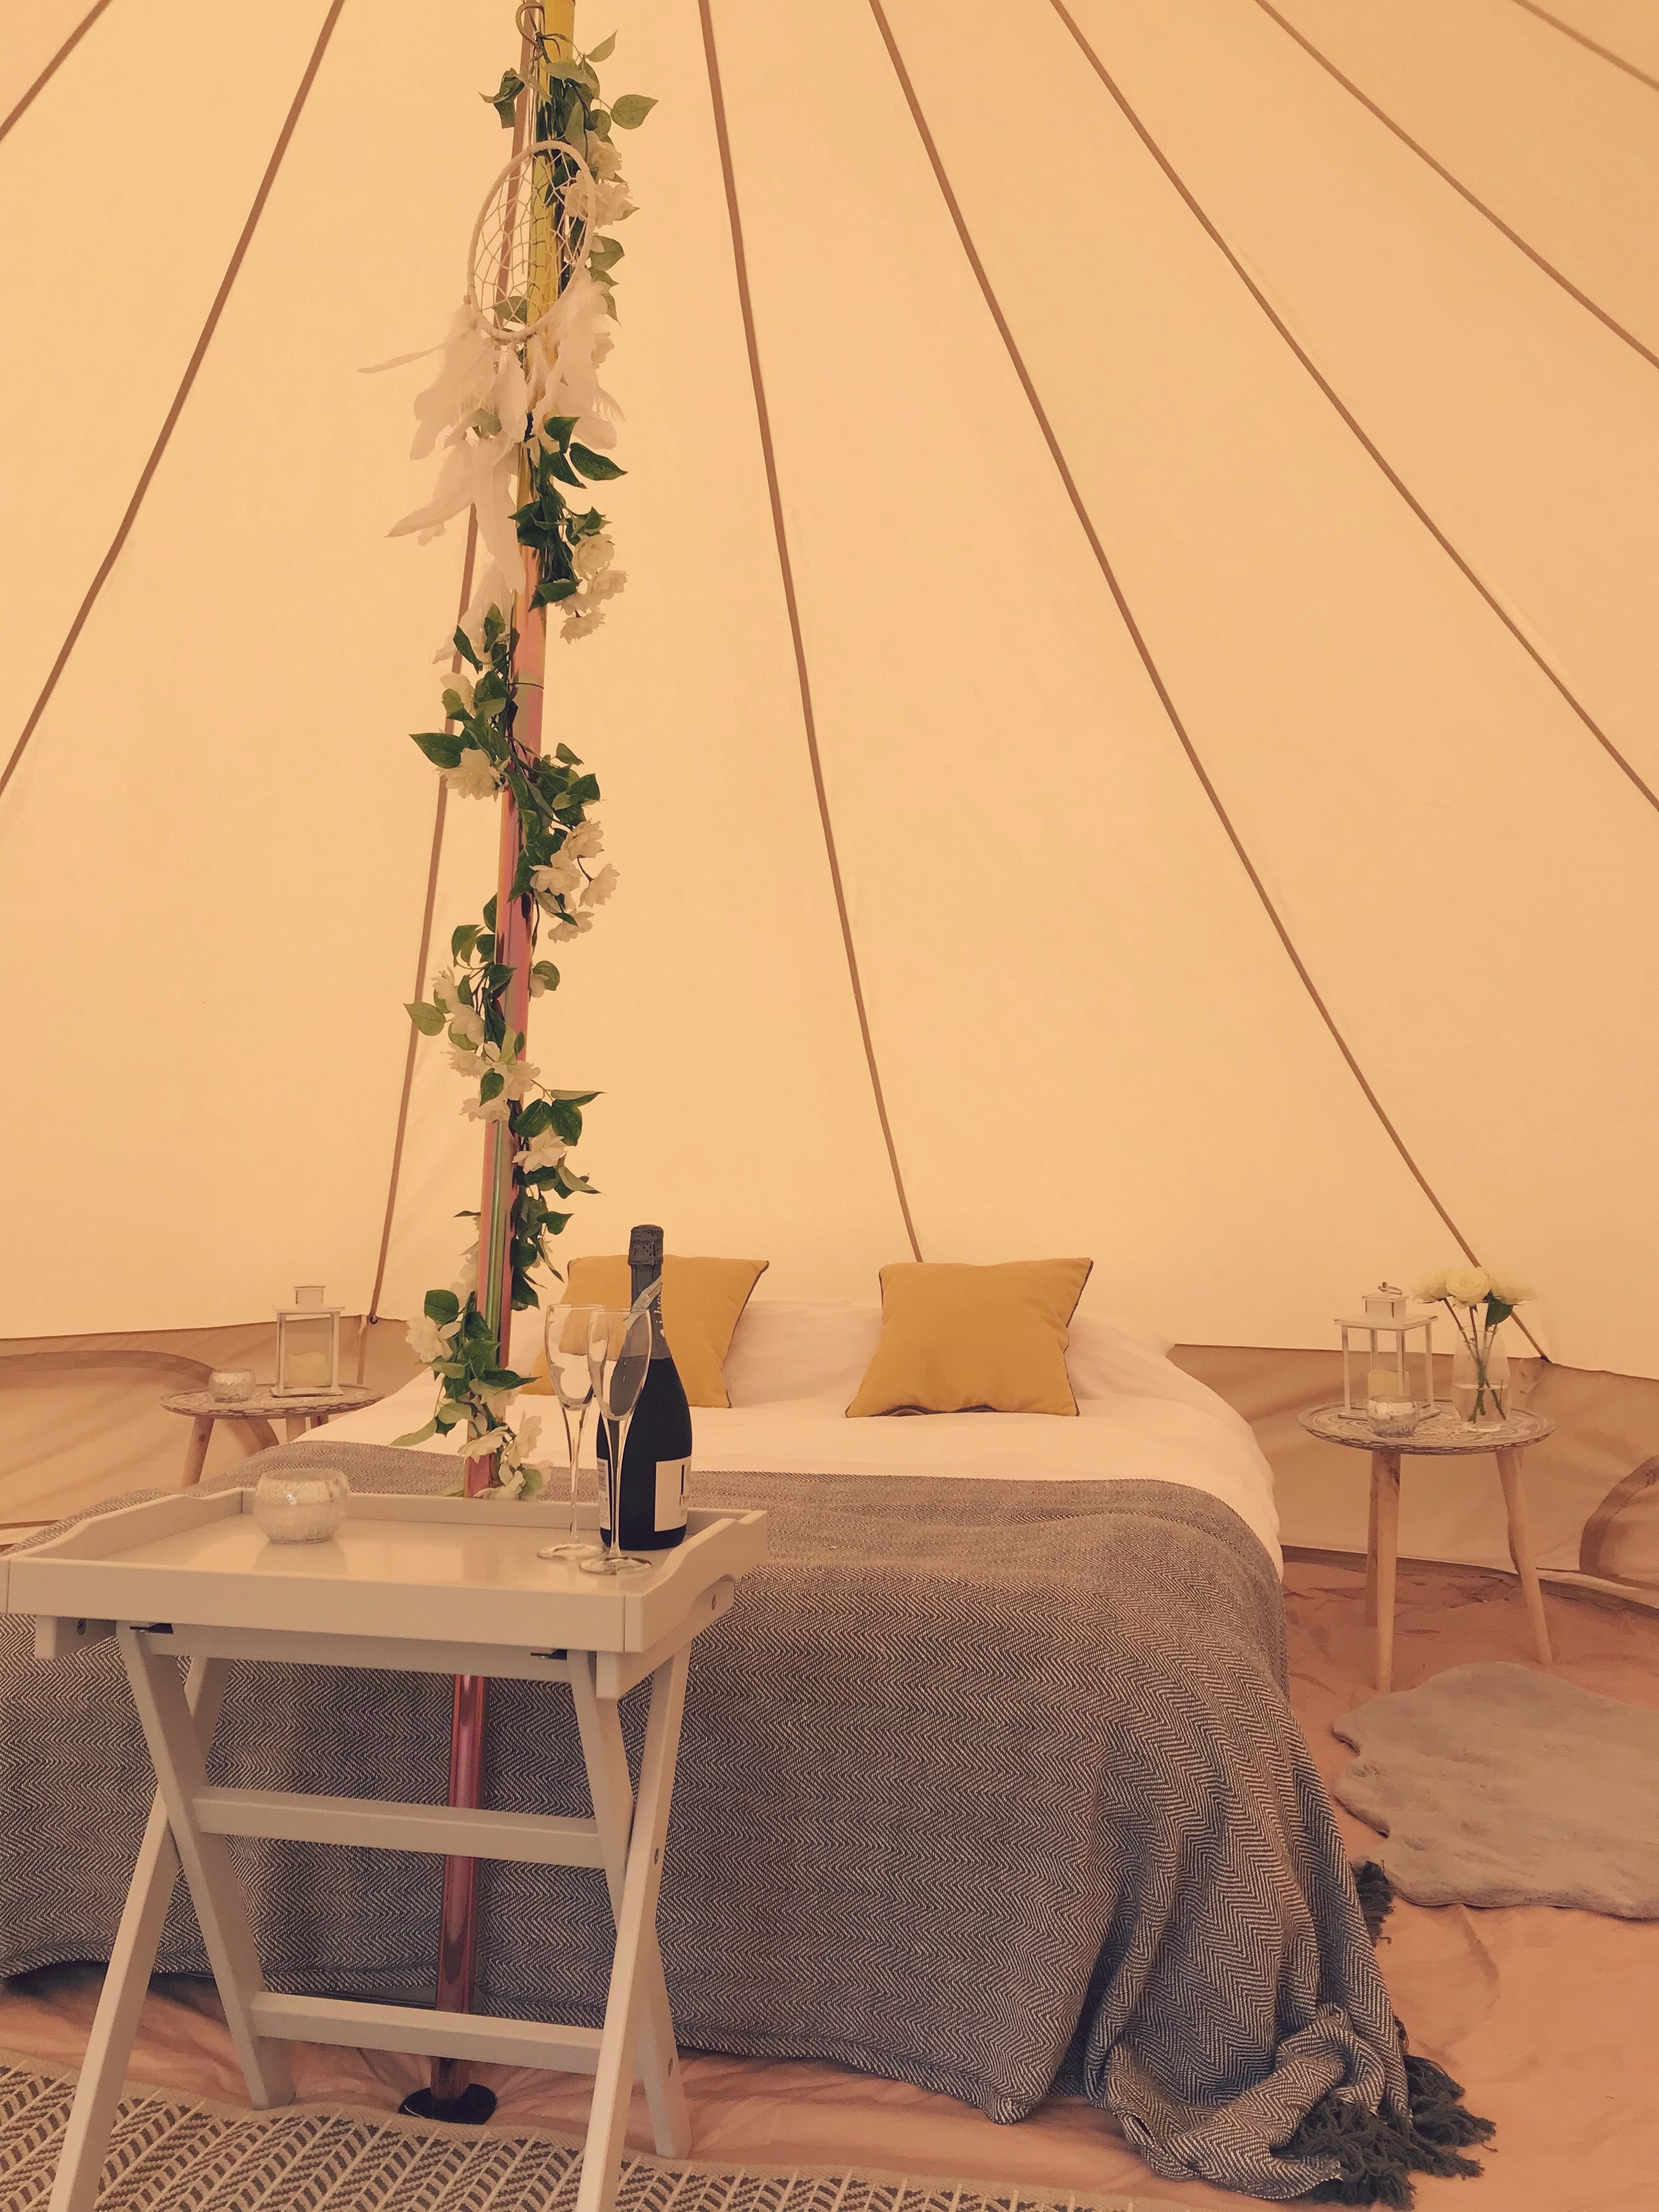 From £245 - There's nothing more romantic than spending a night under the stars and you can do just that in our luxurious Bridal Suite Bell Tent.Perfect if you're planning an outdoor or festival wedding and want to create amazing memories by experiencing glamping on your wedding night.